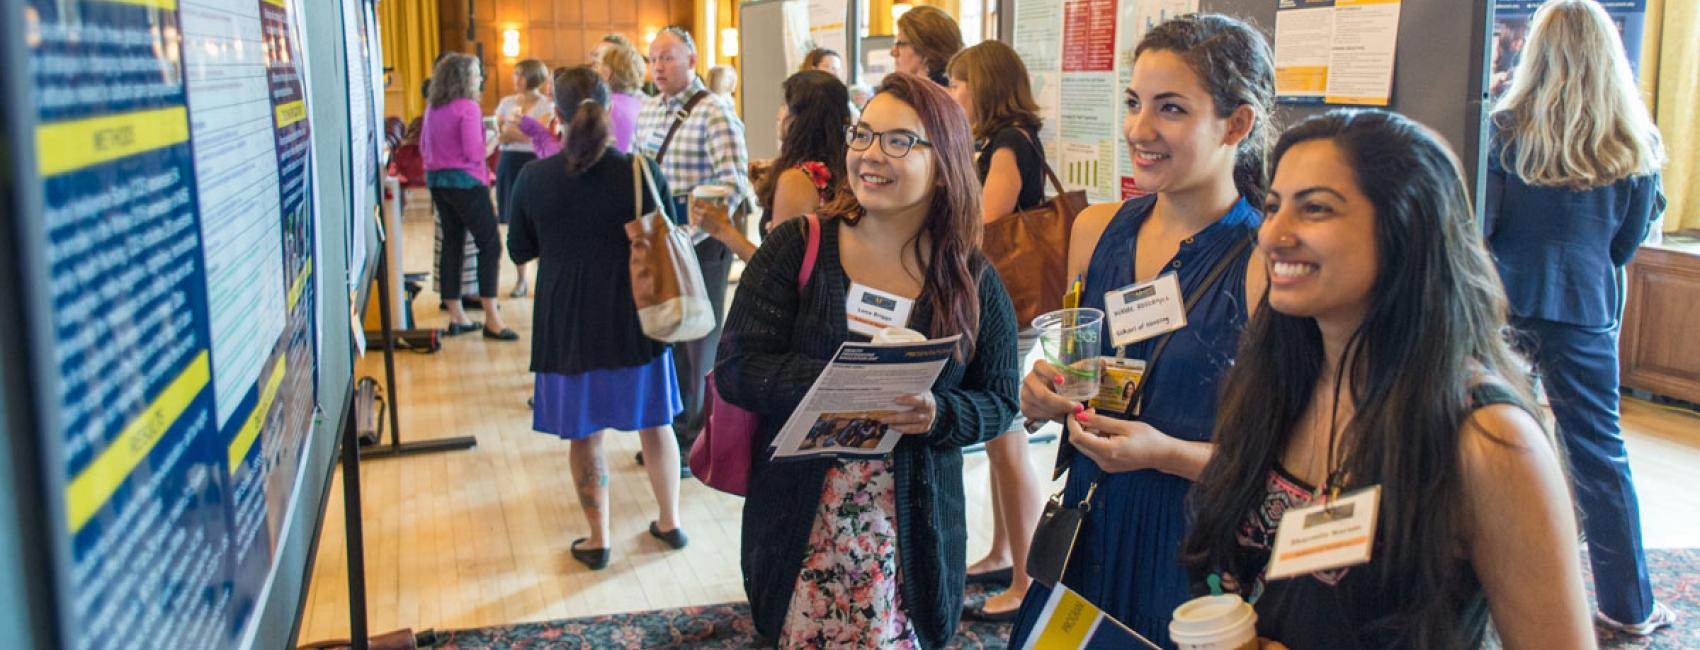 Students at Health Professions Day poster session